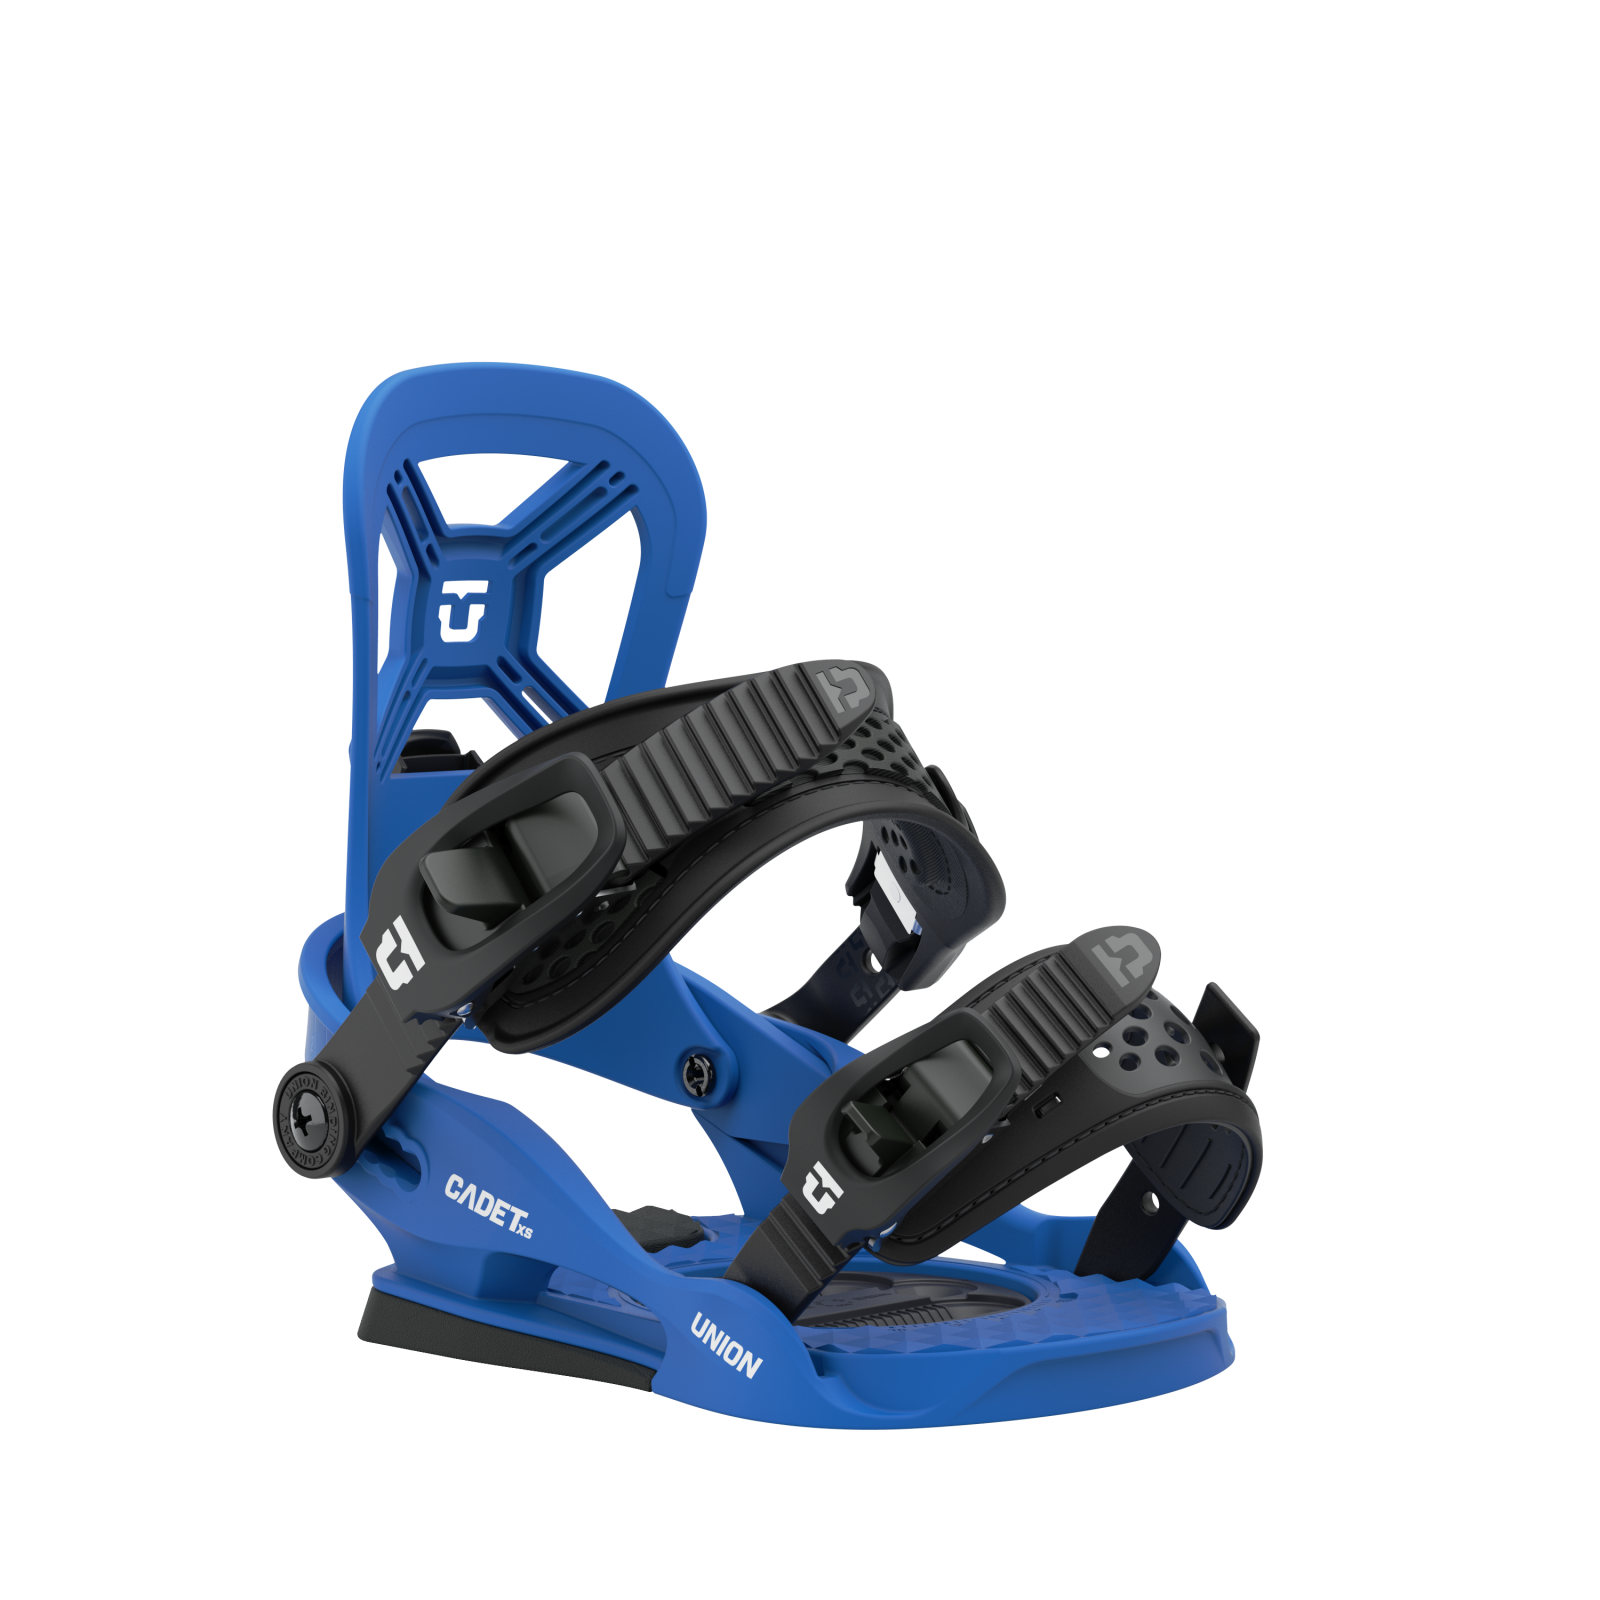 Union Cadet XS Snowboard Binding (Multiple Color Options)